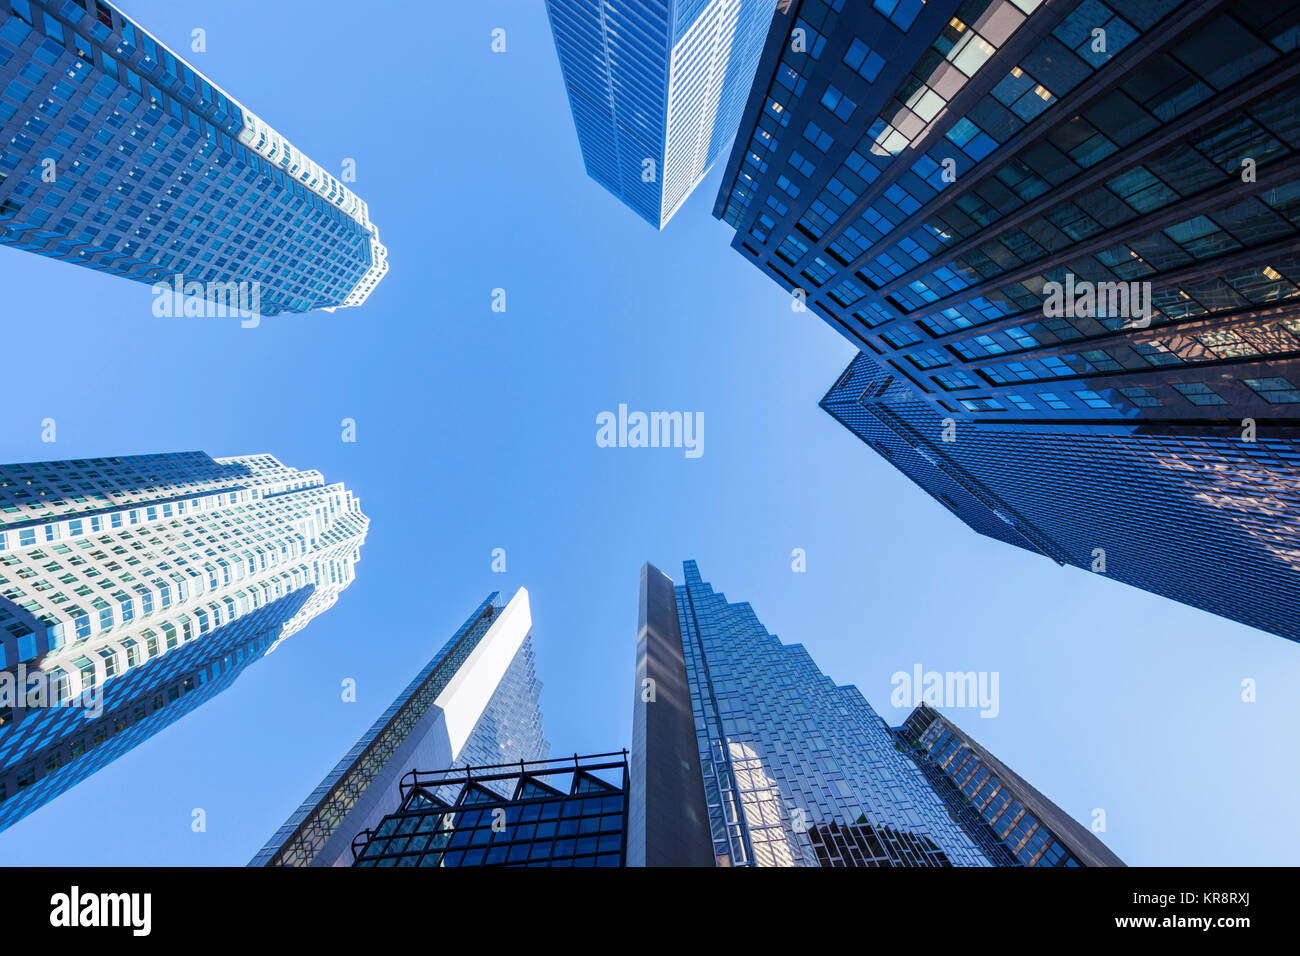 Canada, Ontario, Toronto, Skyscrapers seen from below - Stock Image